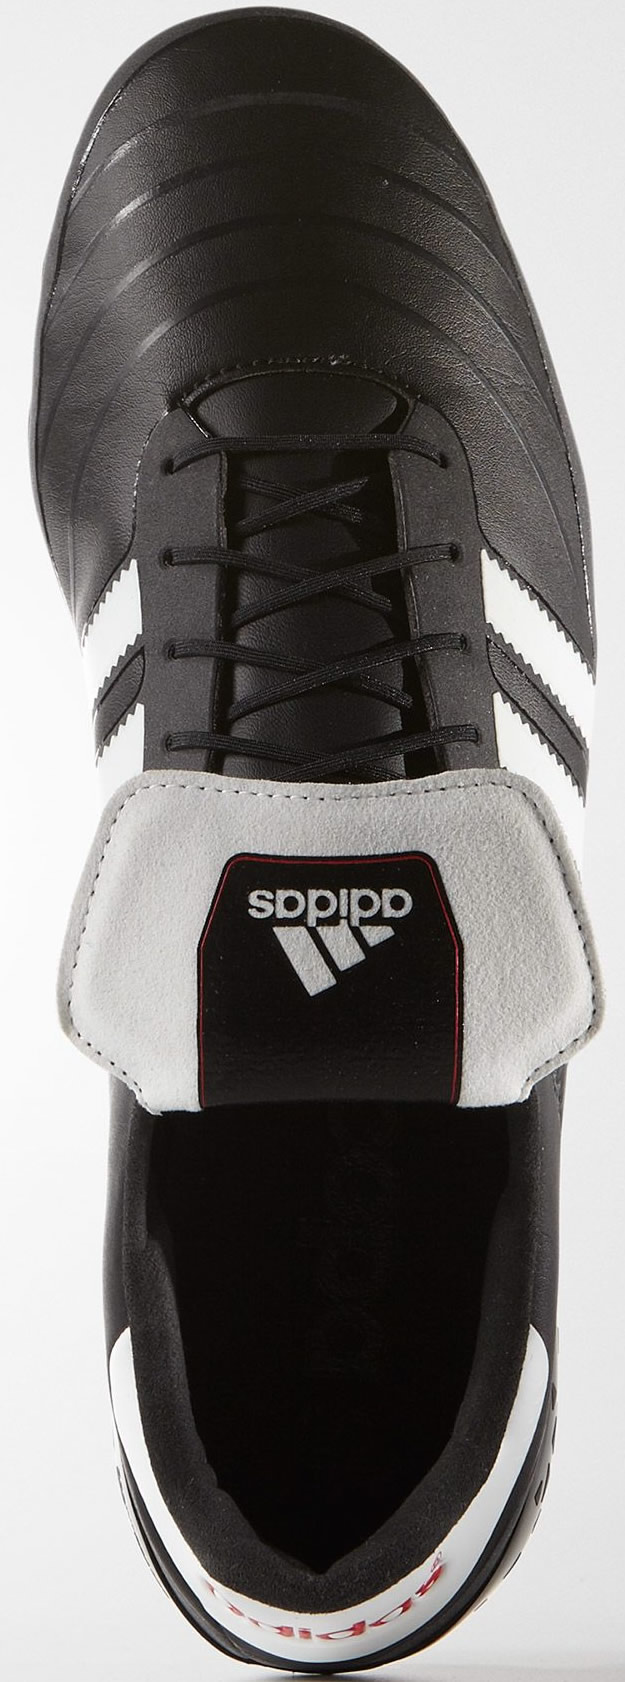 Copa SL Soccer Cleats by adidas